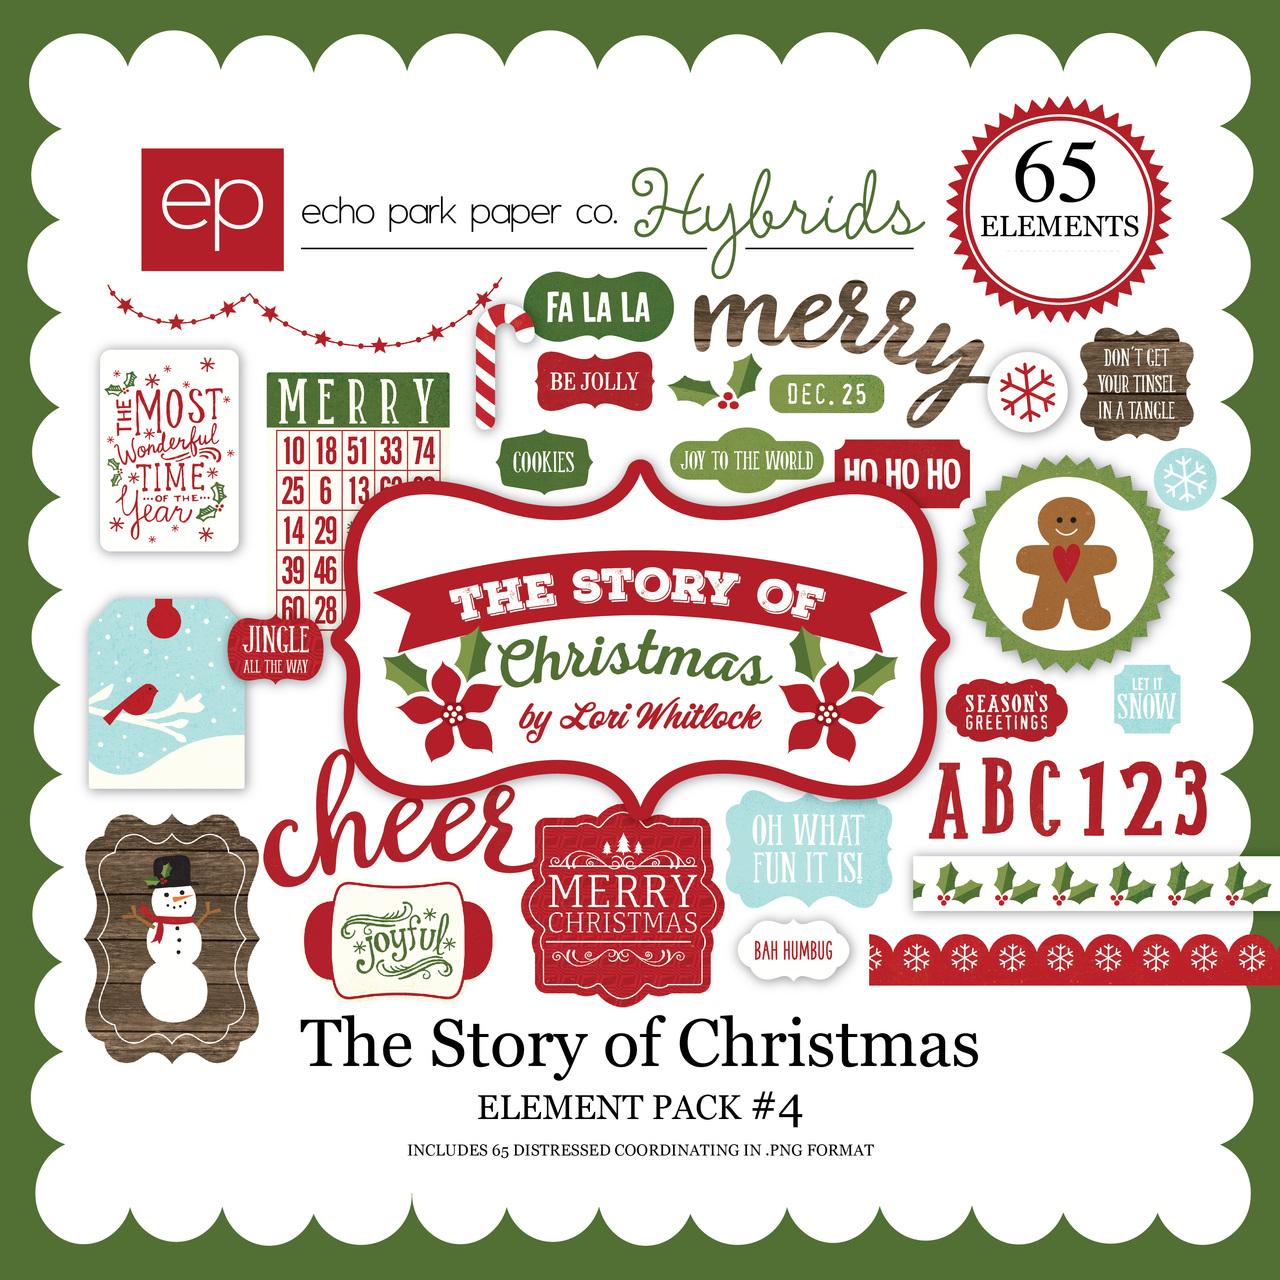 The Story of Christmas Element Pack 4